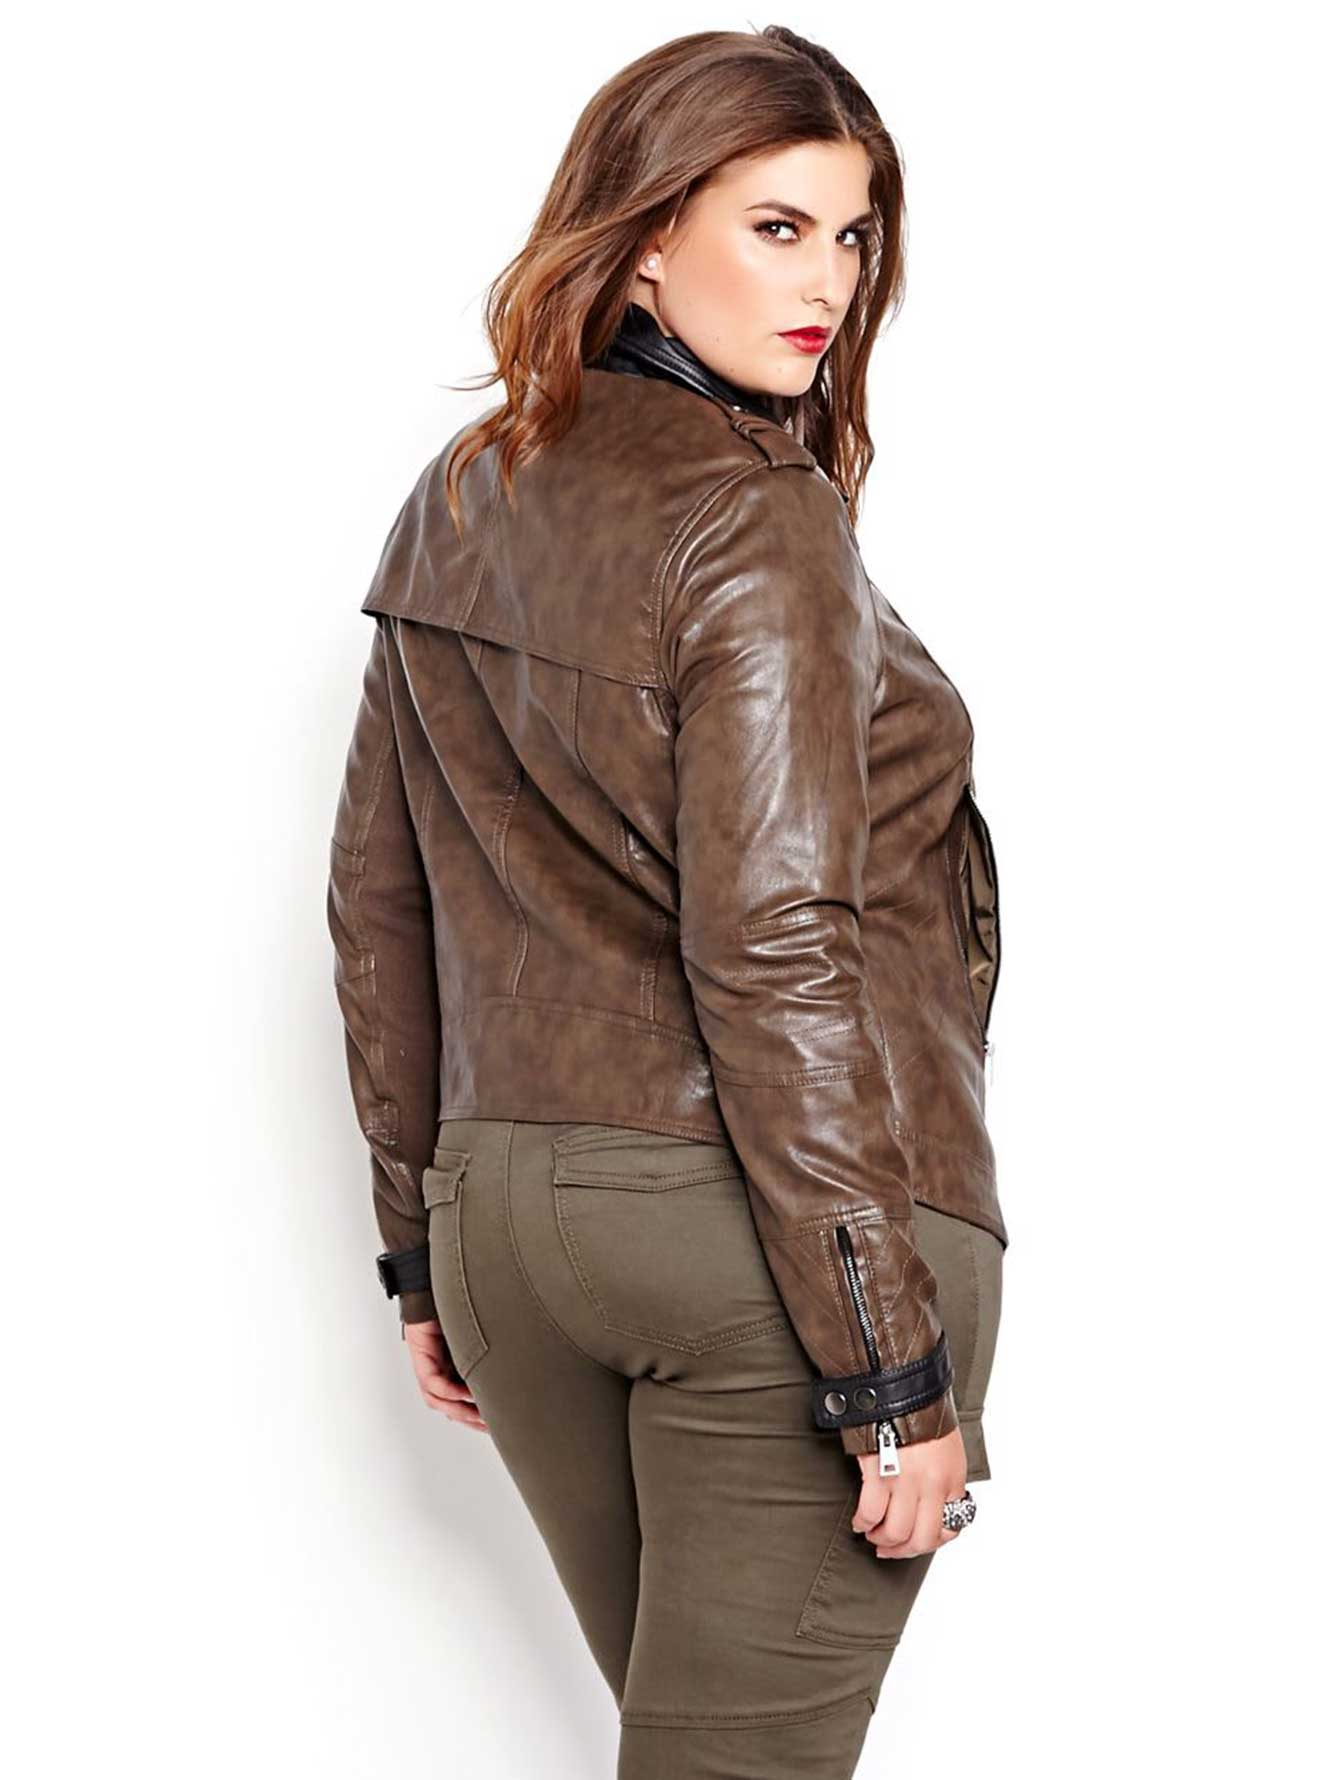 Nadia Aboulhosn Moto Jacket for L&L